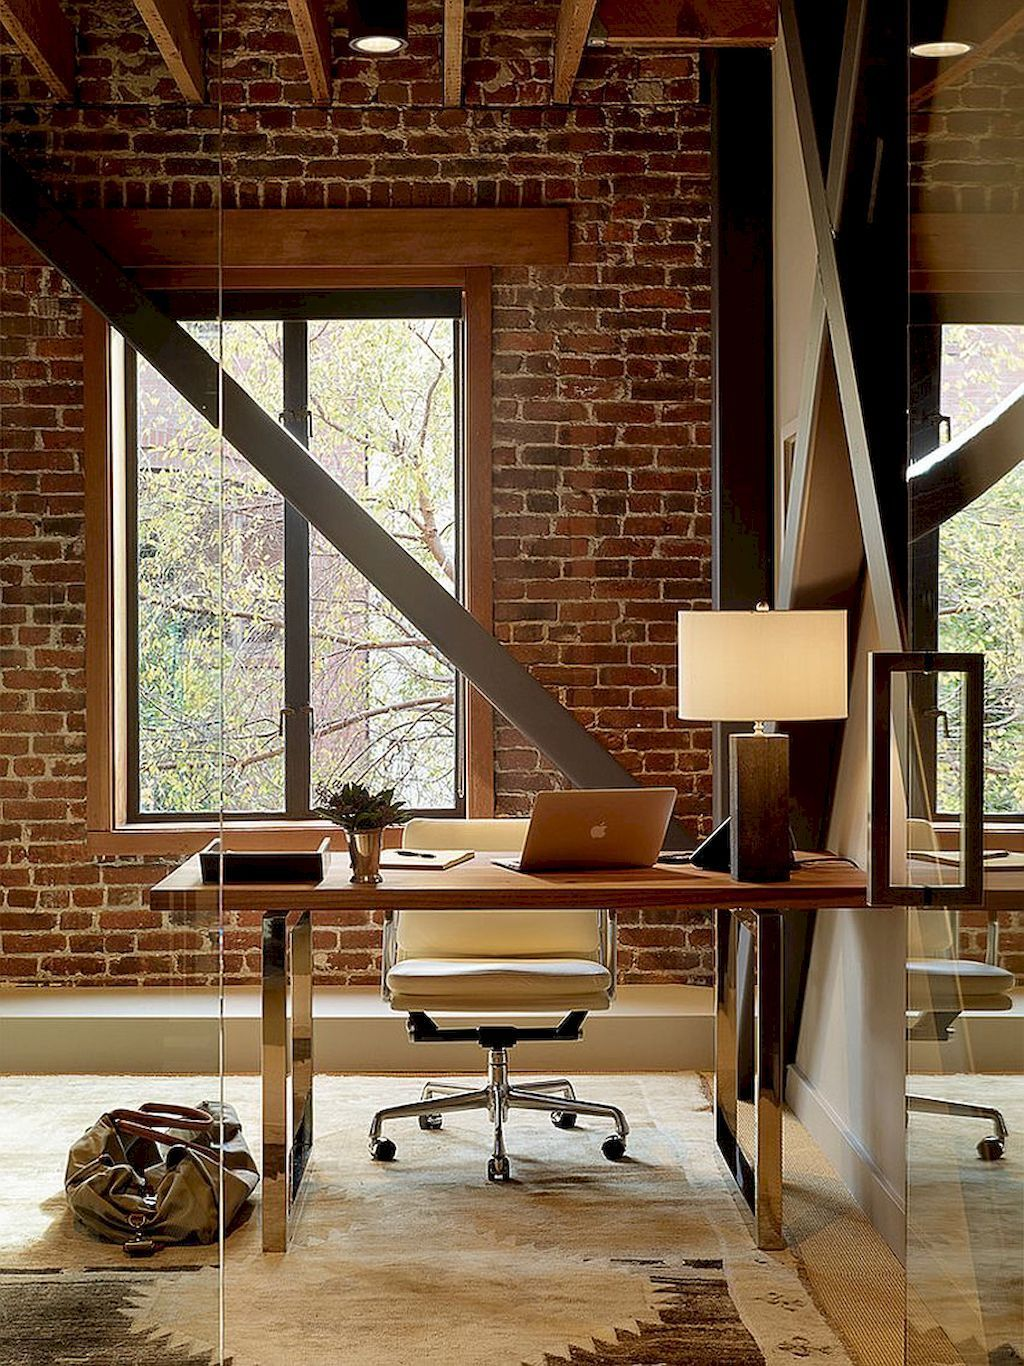 Awesome 70 Simple Home Office Decor Ideas for Men https://roomaniac on men game room ideas, unique electrician office ideas, men decorating ideas,